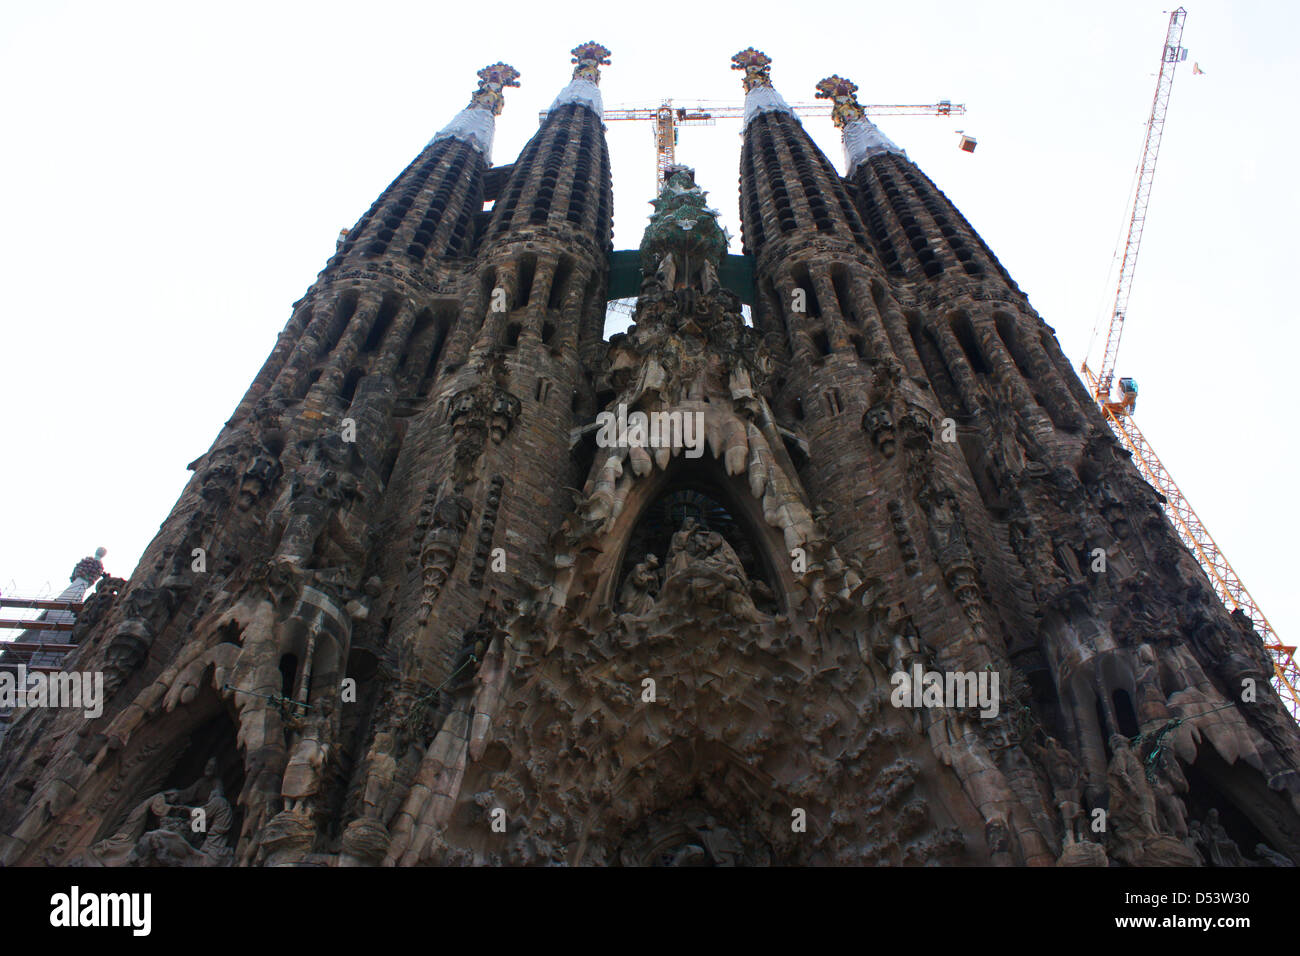 Sagrada Familia Roman Catholic church in Barcelona, Spain Stock Photo